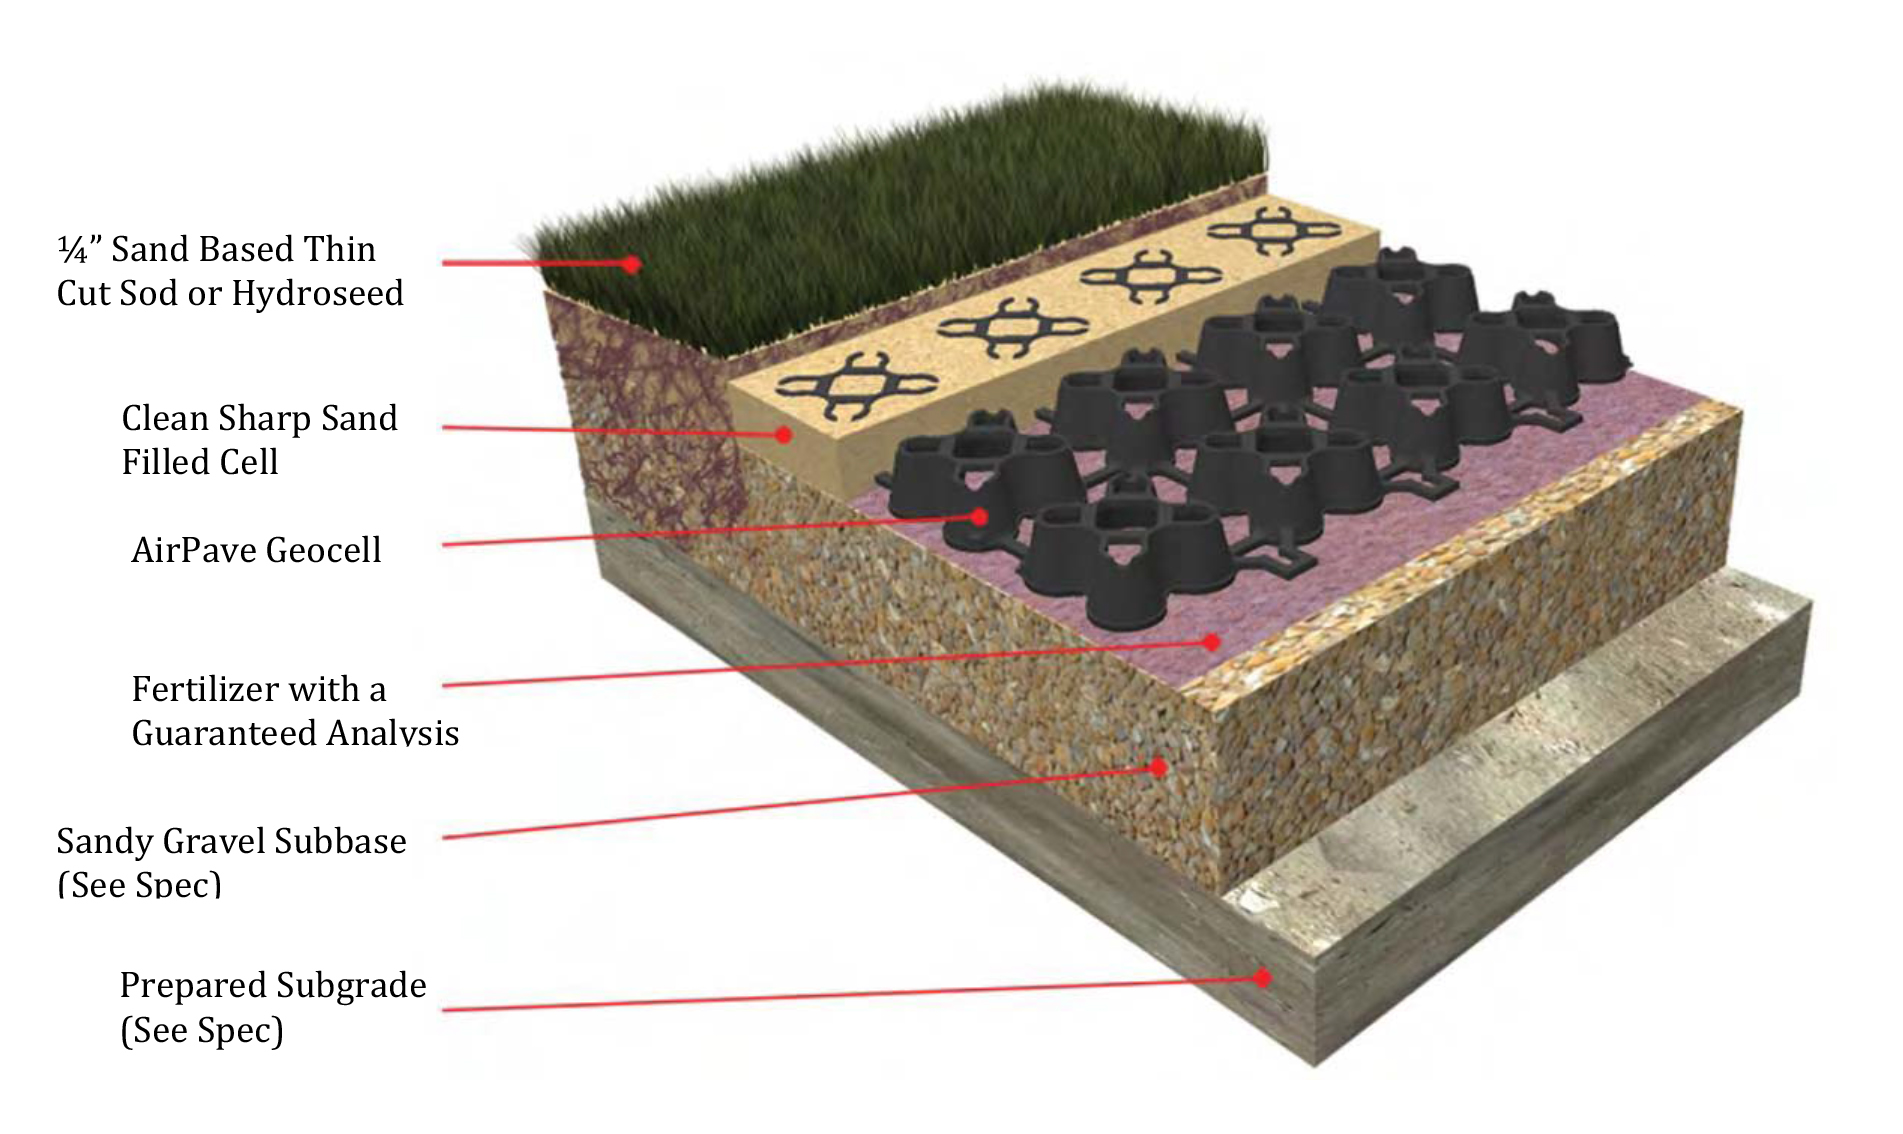 Airpave For Grass Pave Fire Lane And Porous Flexible Paving